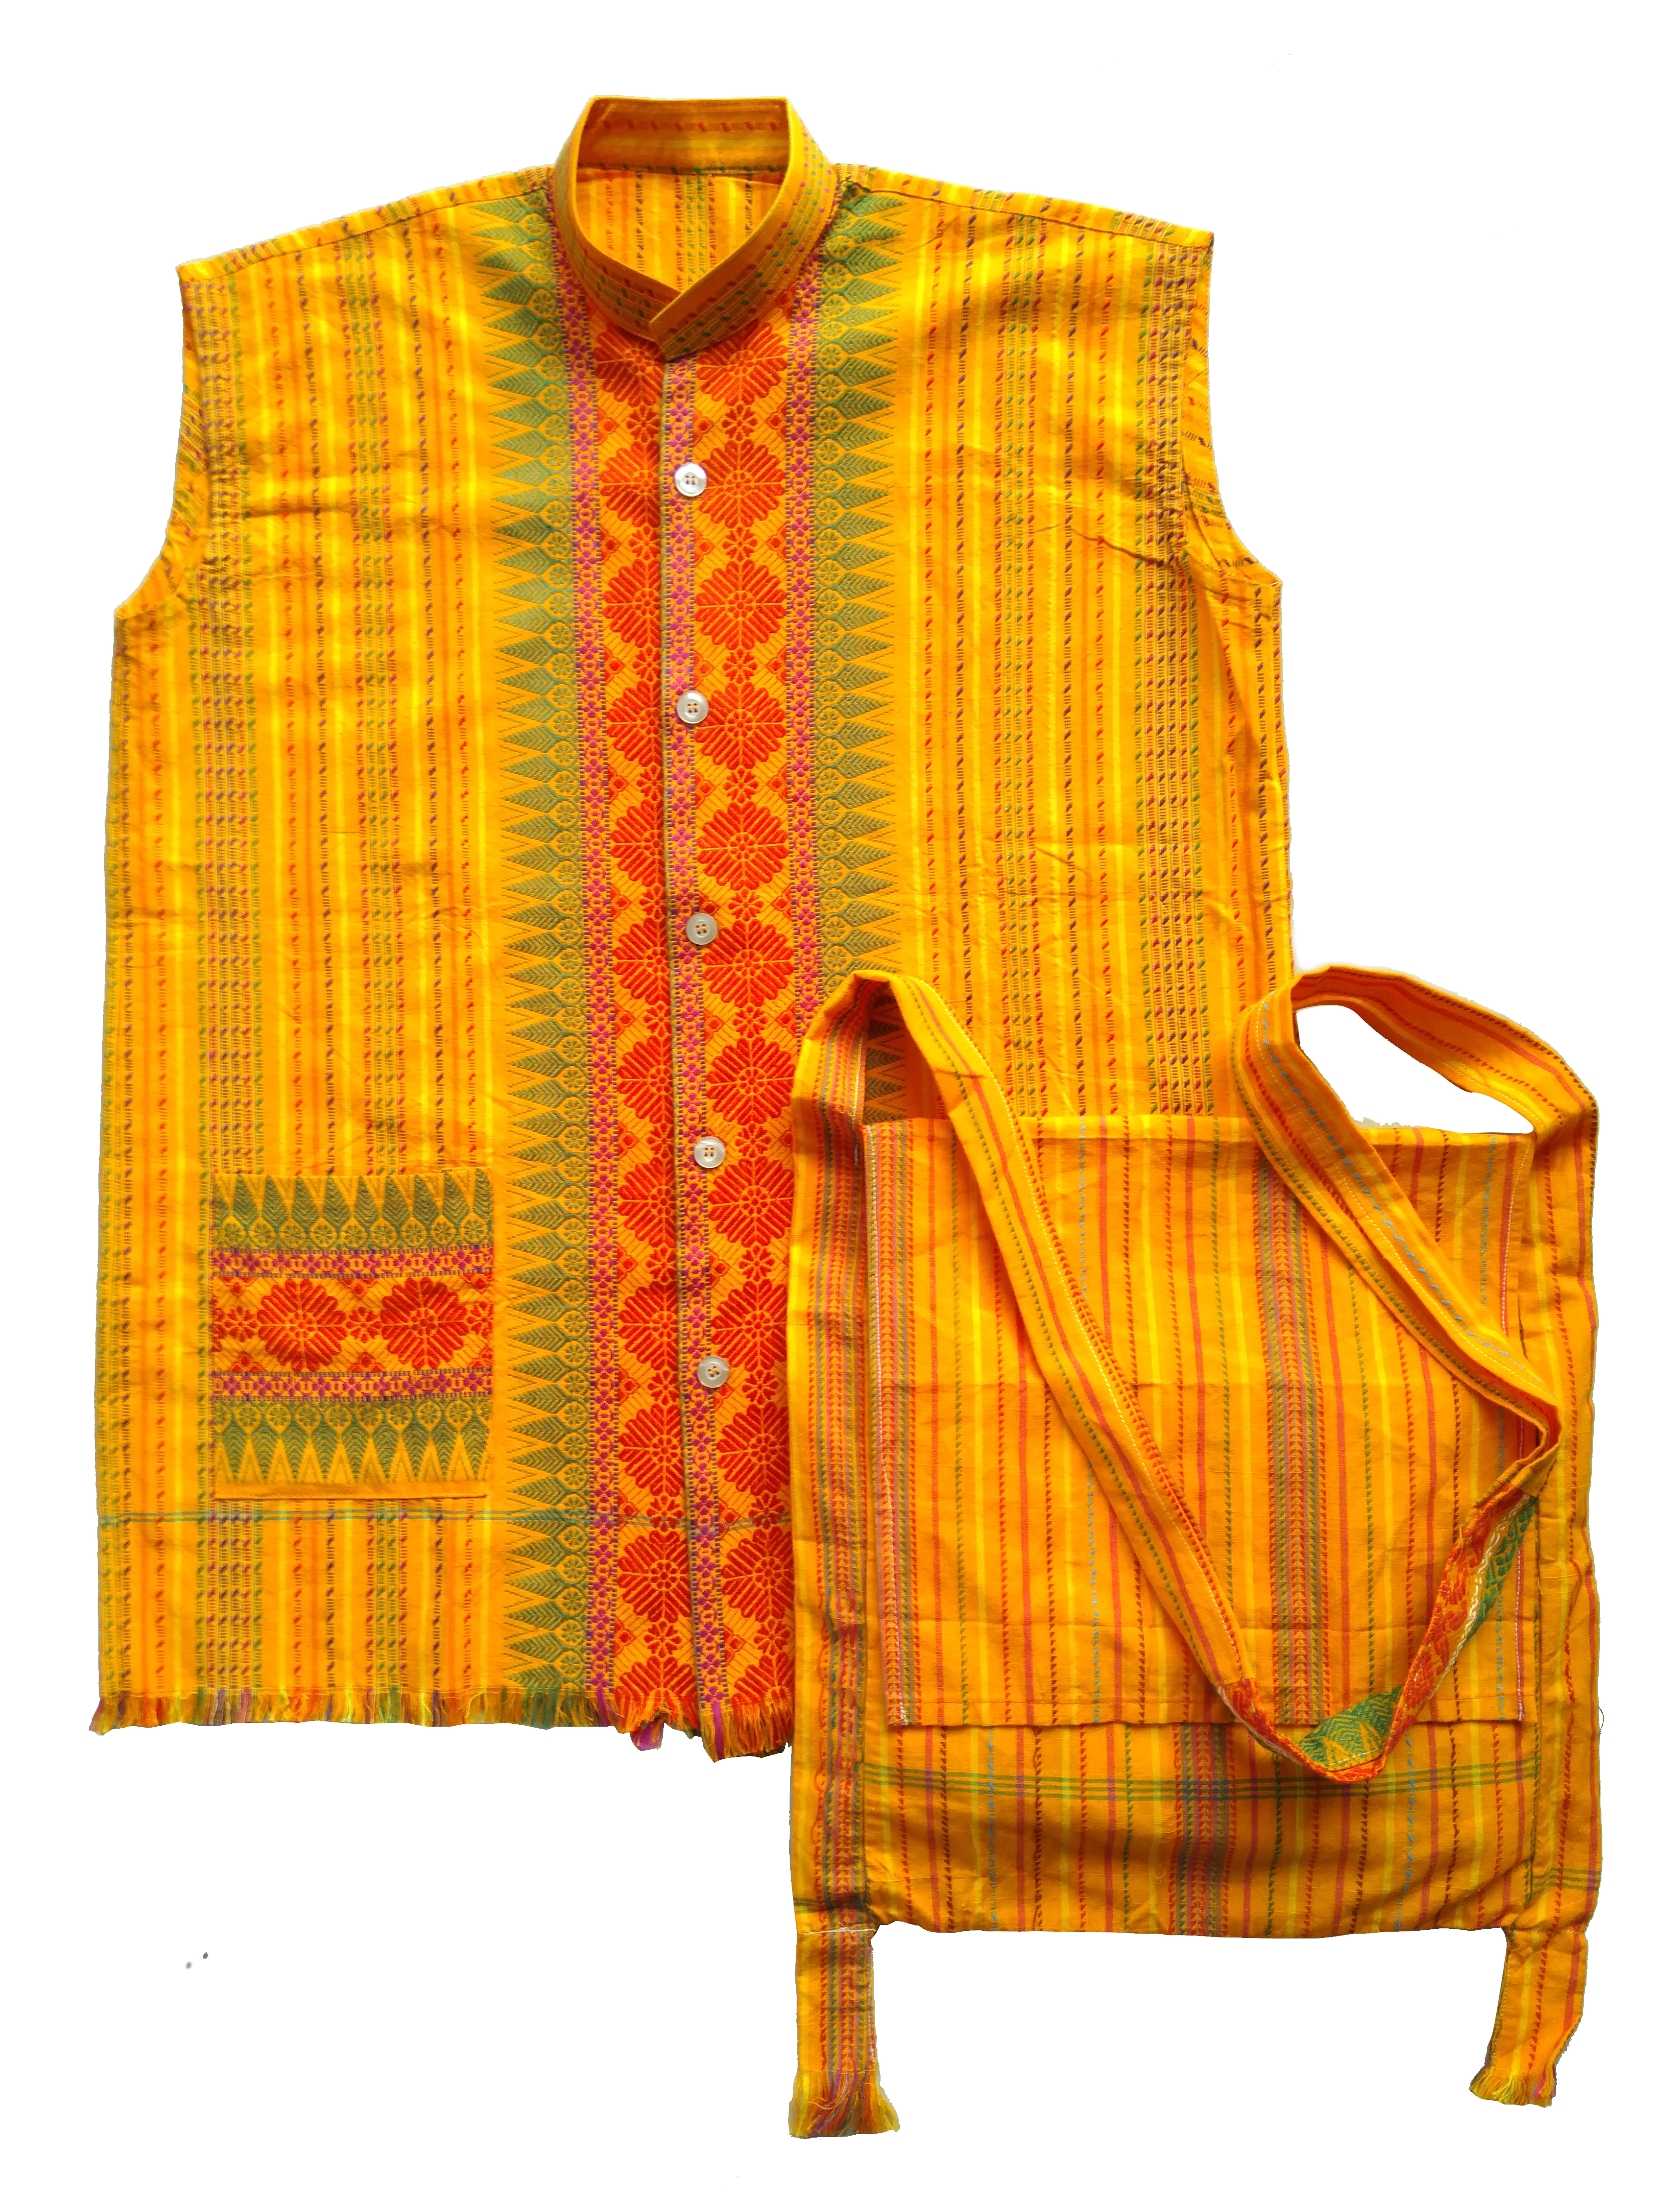 Waistcoat and bag stitched out of traditional textiles generally used for dokhona.